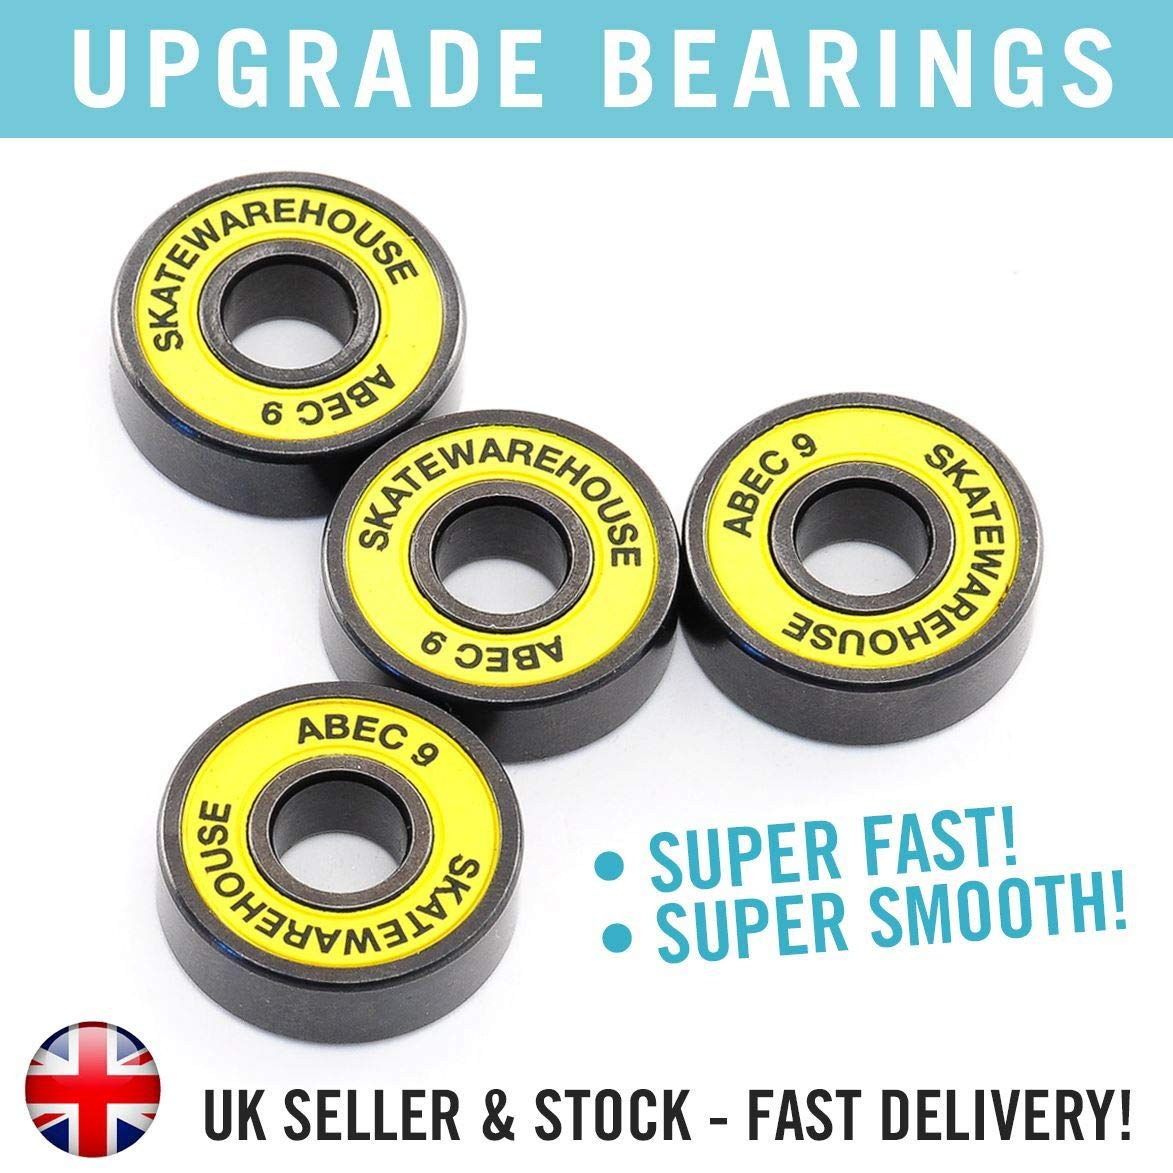 Skatewarehouse Abec 9 Ultra Smooth Stunt Scooter Replacement Wheel Bearings x4